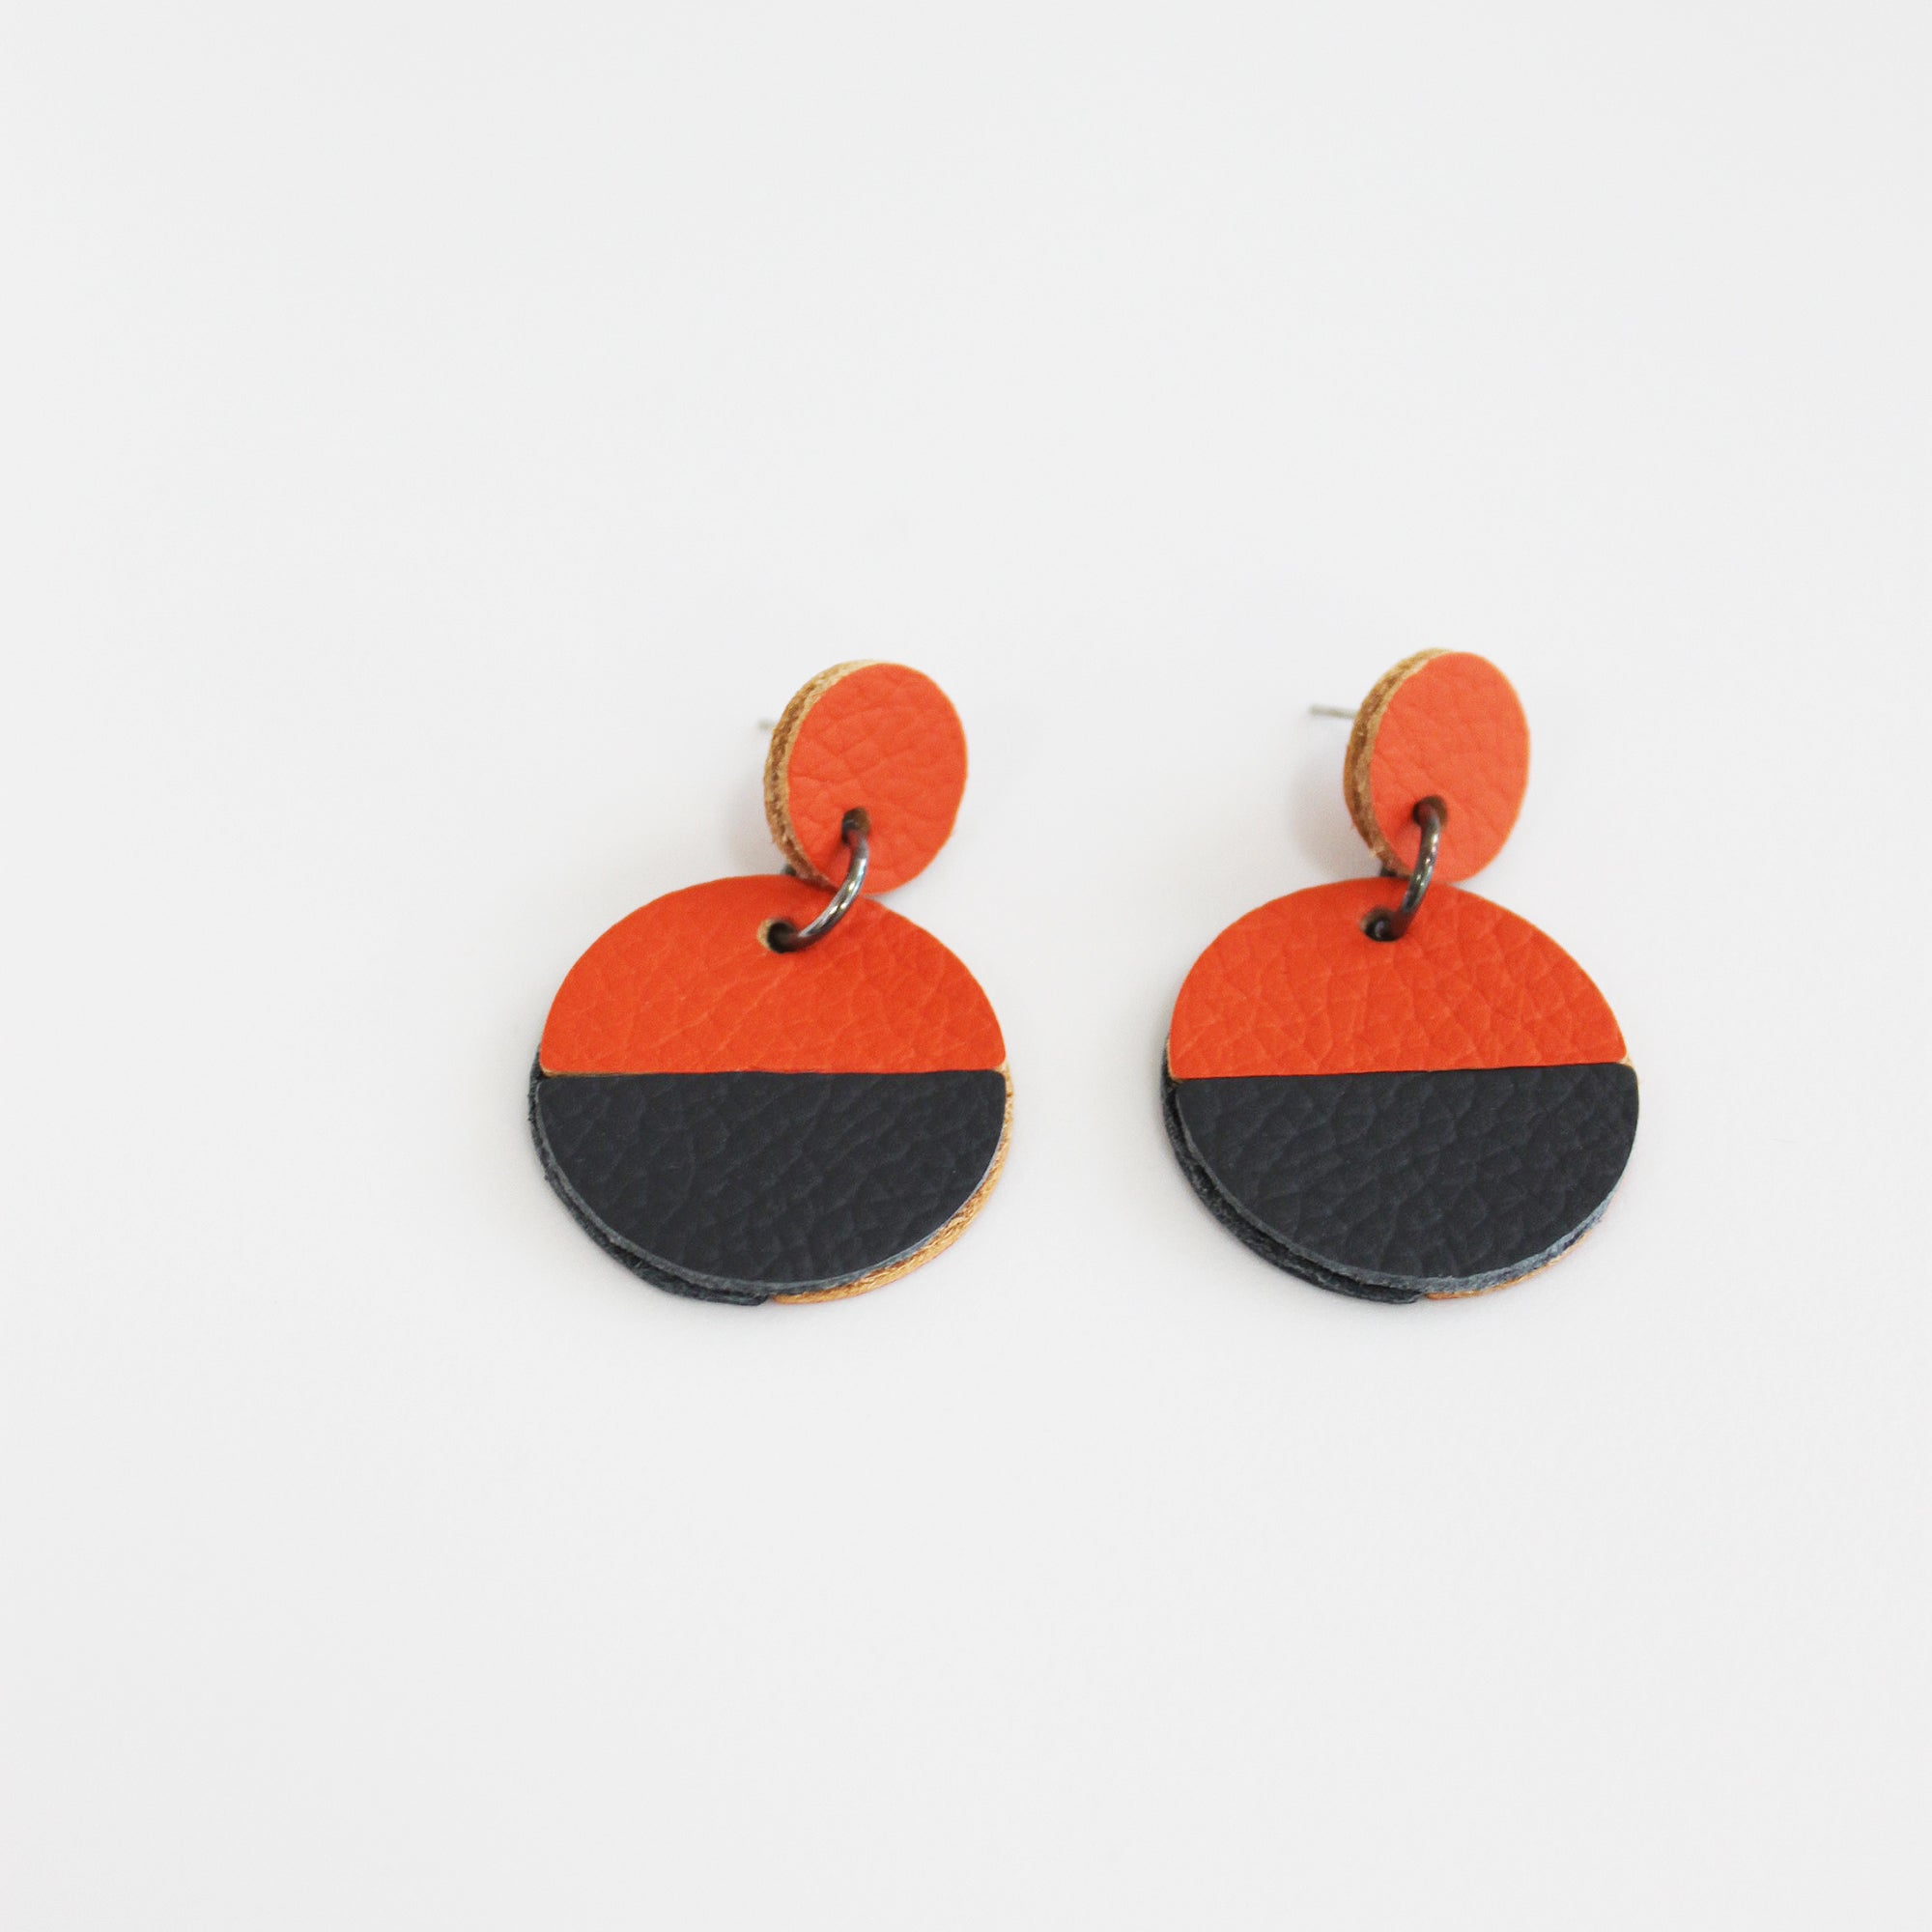 Orange and grey circular leather dangle earrings - Inspired